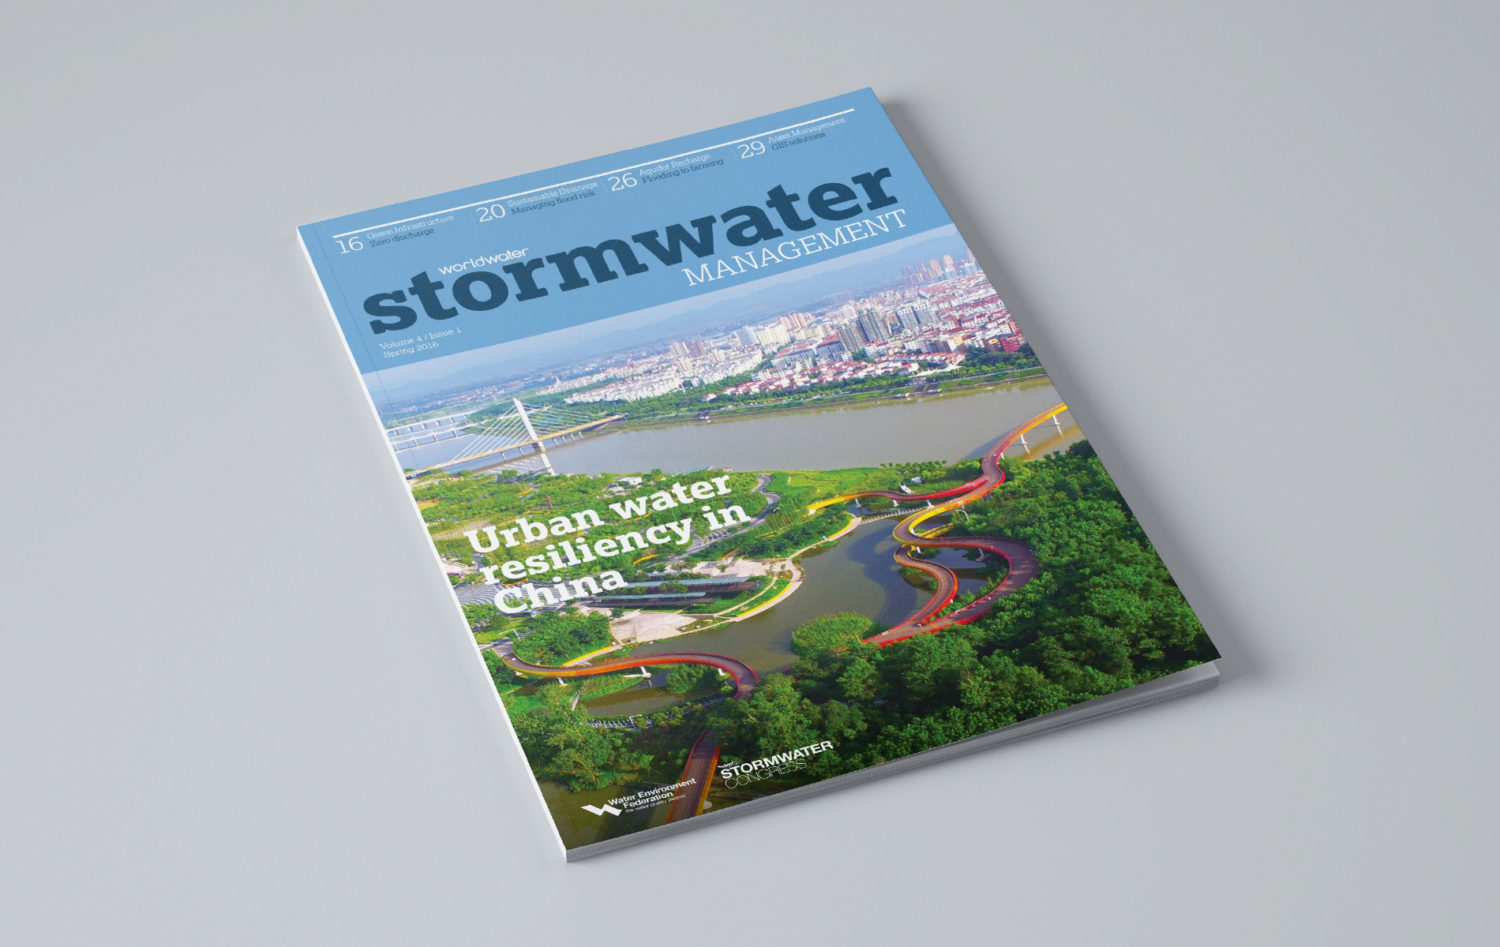 Stormwater-spread